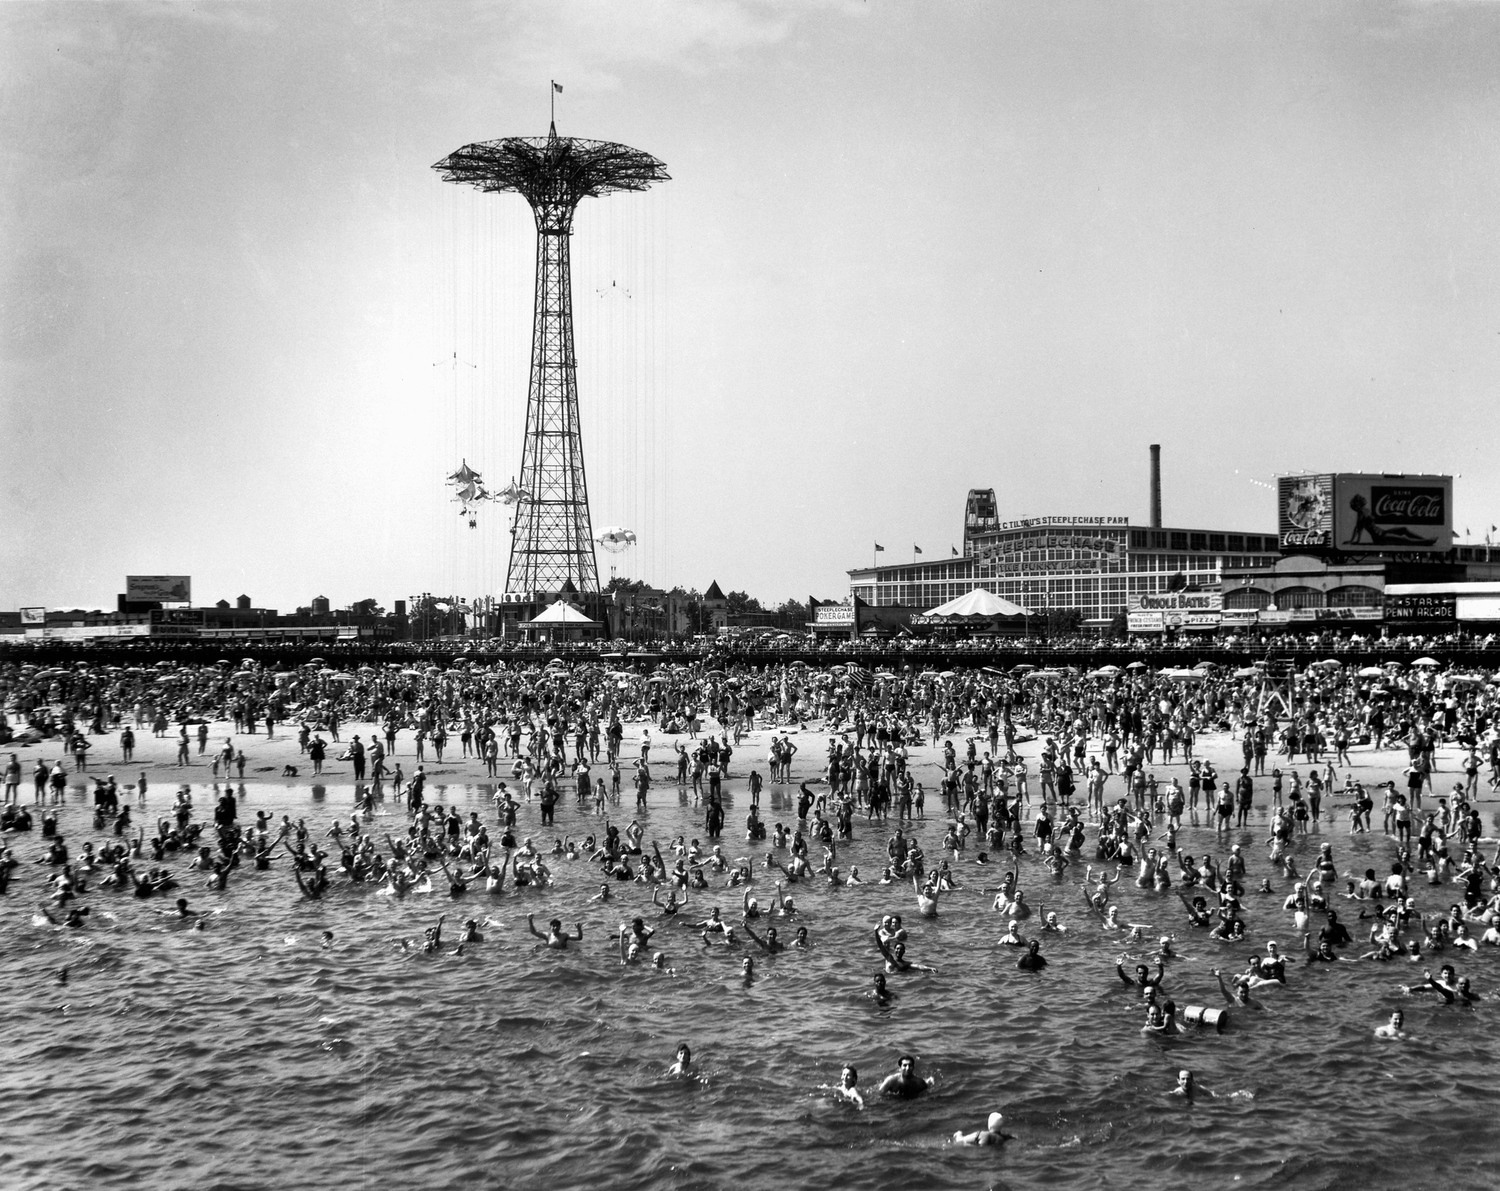 The beach at Coney Island. The parachute ride is visible in the background, 1952.